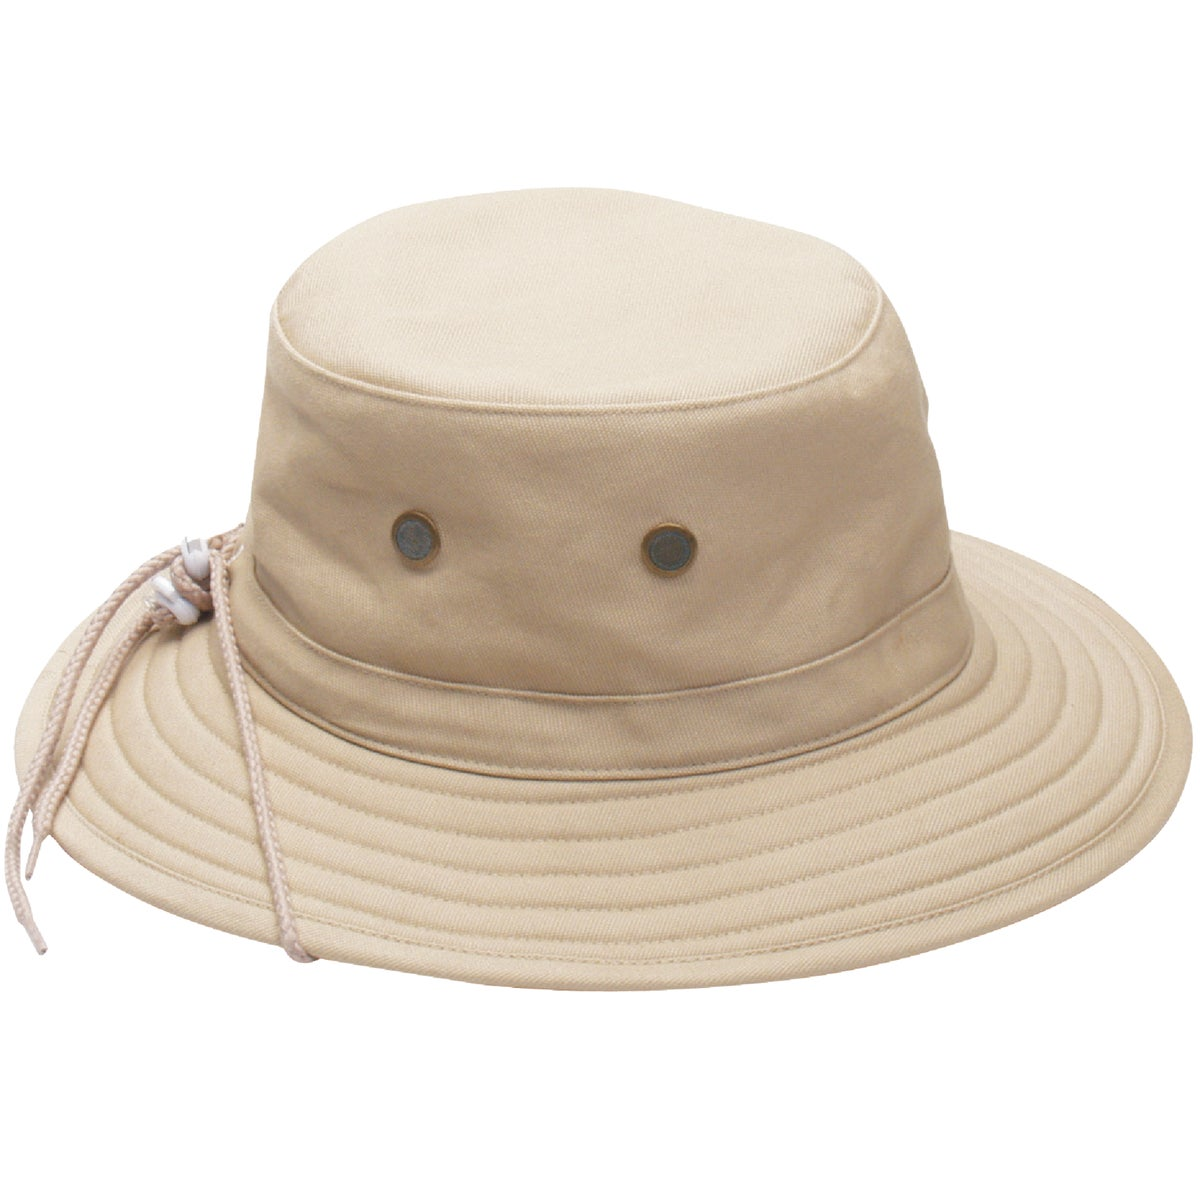 WMNS STONE COTTON HAT - 4471ST by Principle Plastics